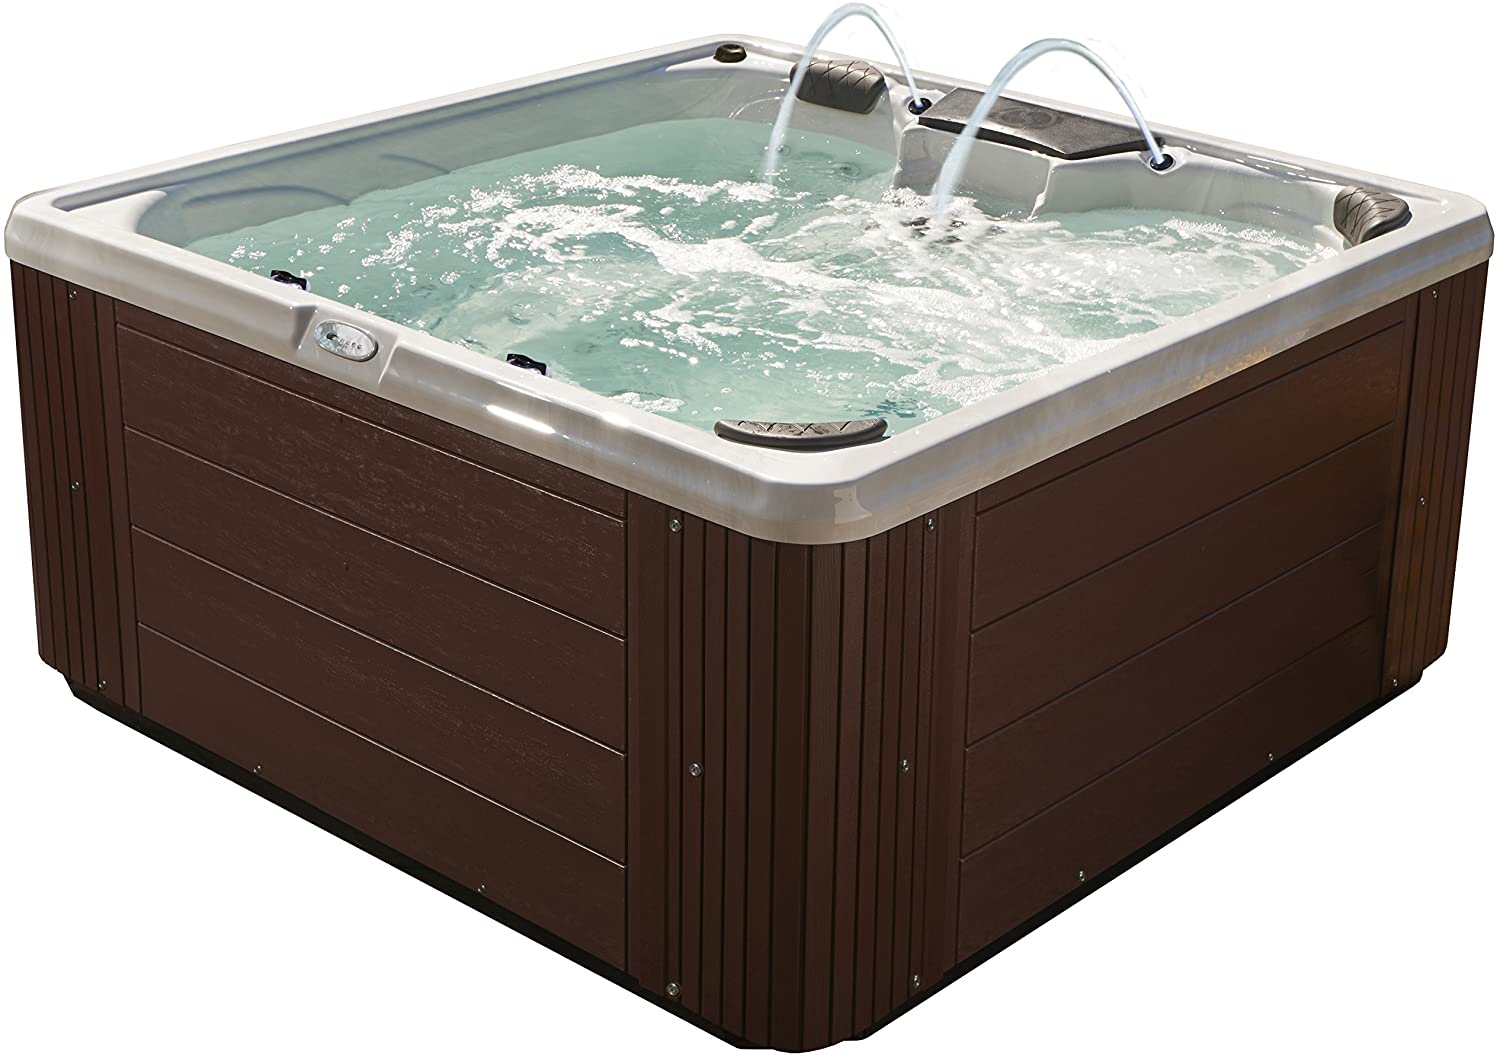 Essential-Hot-Tubs-30-Jets-Adelaide-Hot-Tub Feature